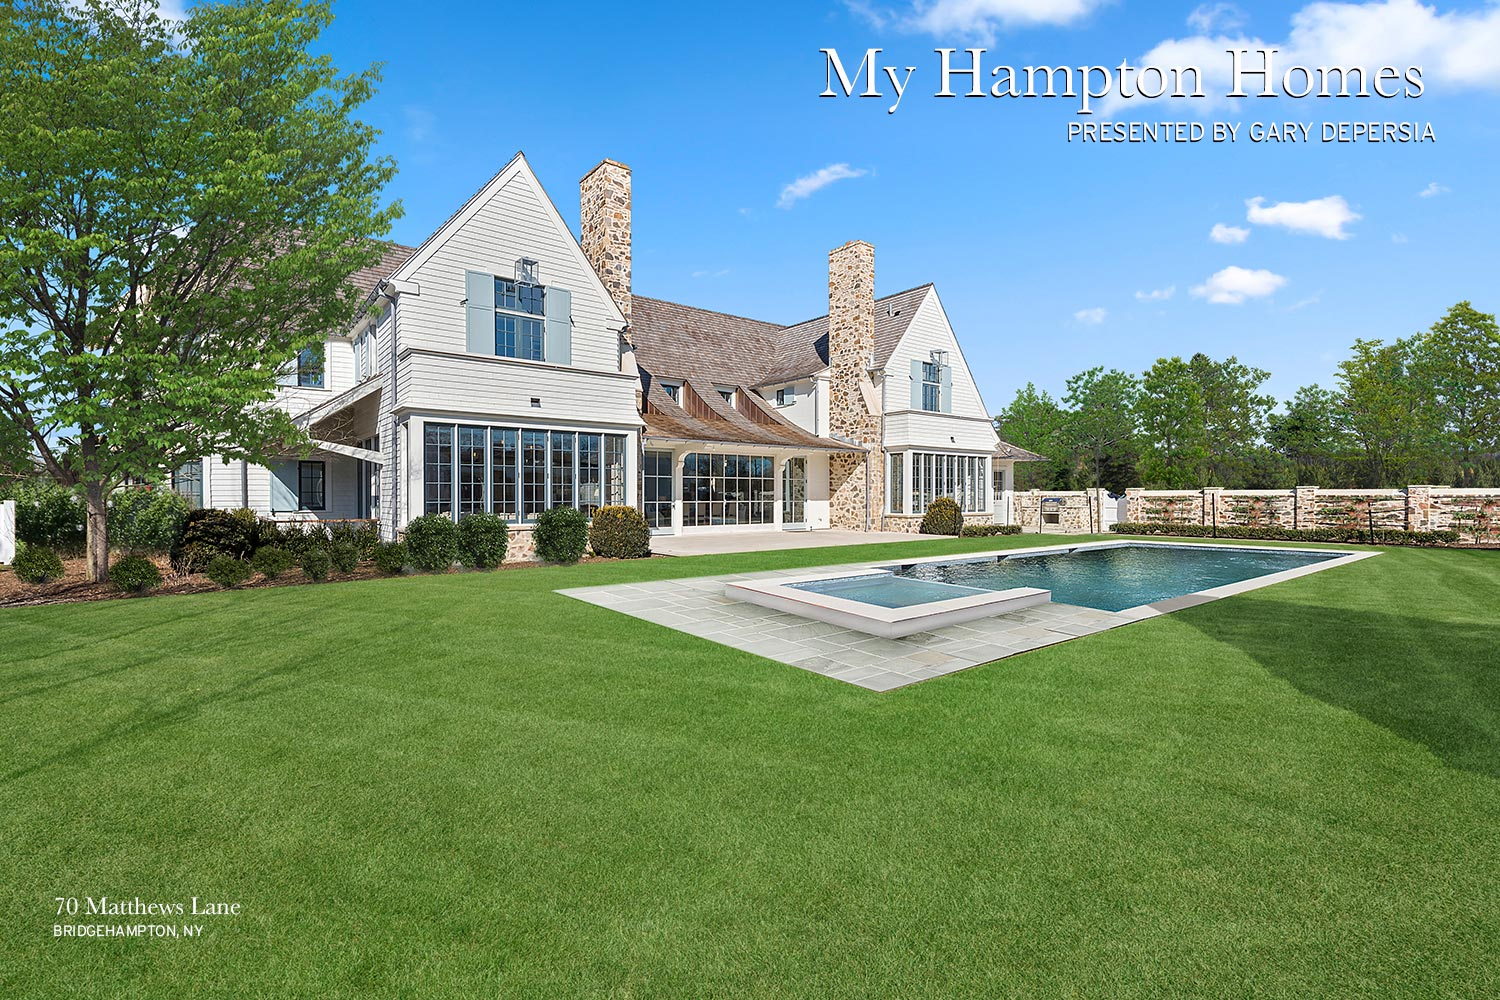 My Hampton Homes